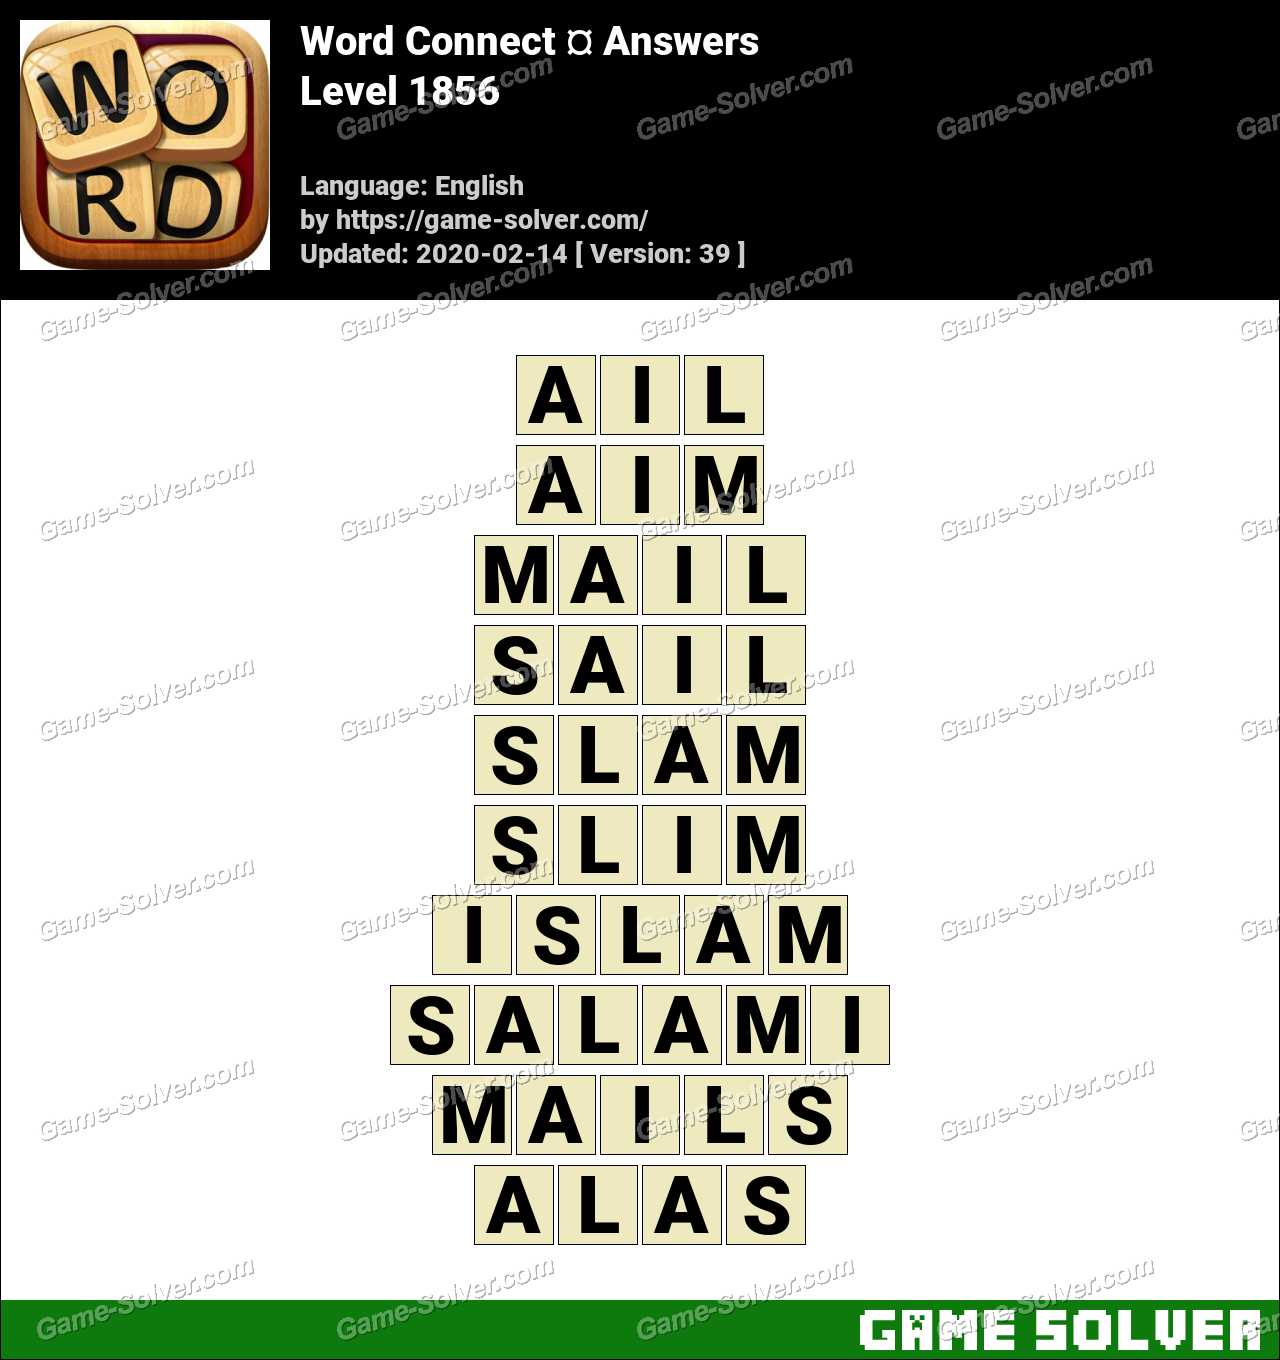 Word Connect Level 1856 Answers